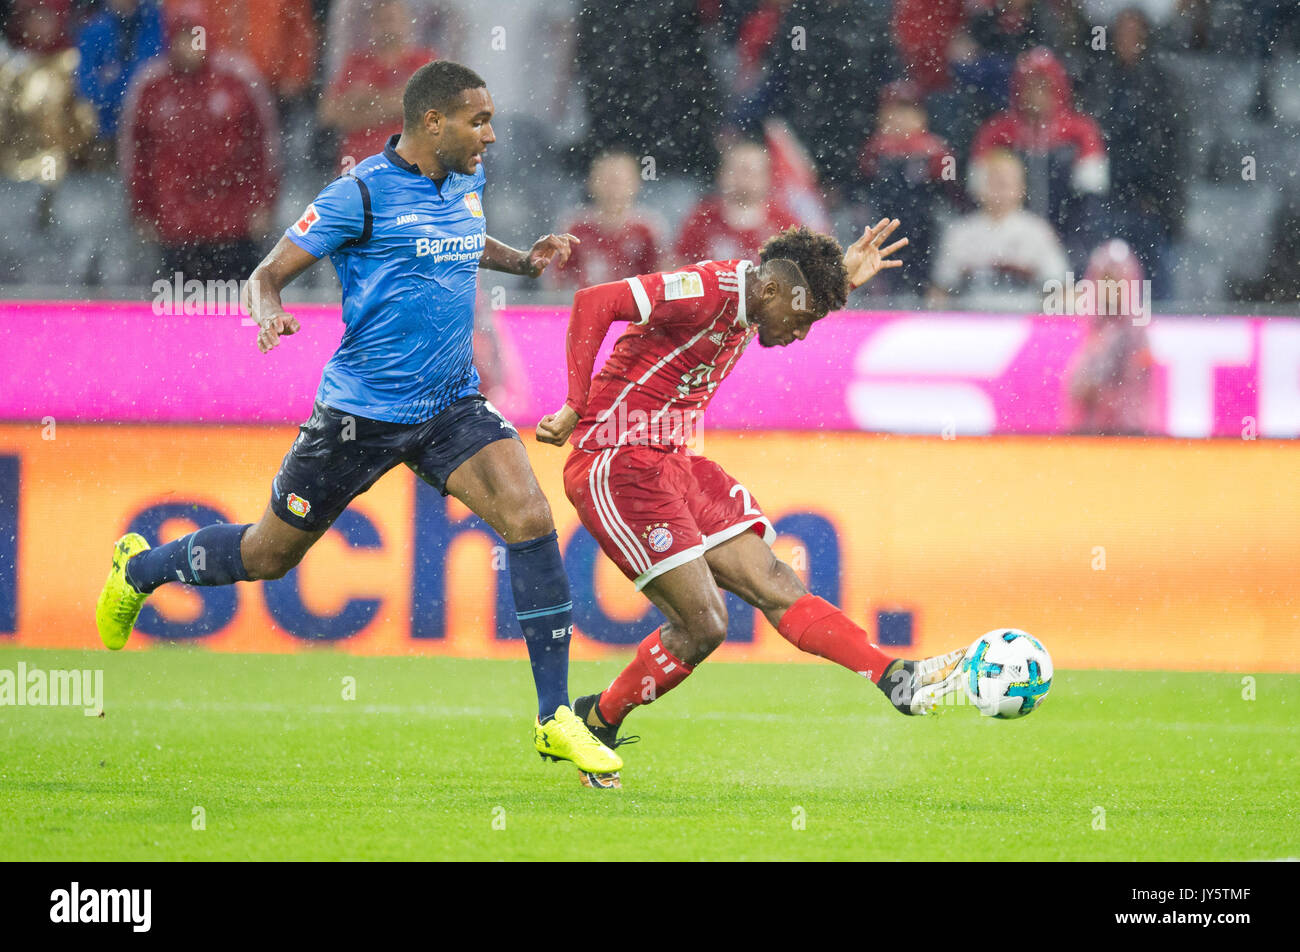 Deutschland. 18th Aug, 2017. Kingsley COMAN (FC Bayern) /re. und Jonathan TAH (Leverkusen) GES/ Fussball/ 1. Bundesliga: FC Bayern Munich - Bayer 04 Leverkusen, 18.08.2017 -- Football/ Soccer 1st. German Bundesliga Division: Bavaria Munich vs Bayer 04 Leverkusen, Munich, August 18, 2017 | Verwendung weltweit Credit: dpa/Alamy Live News - Stock Image